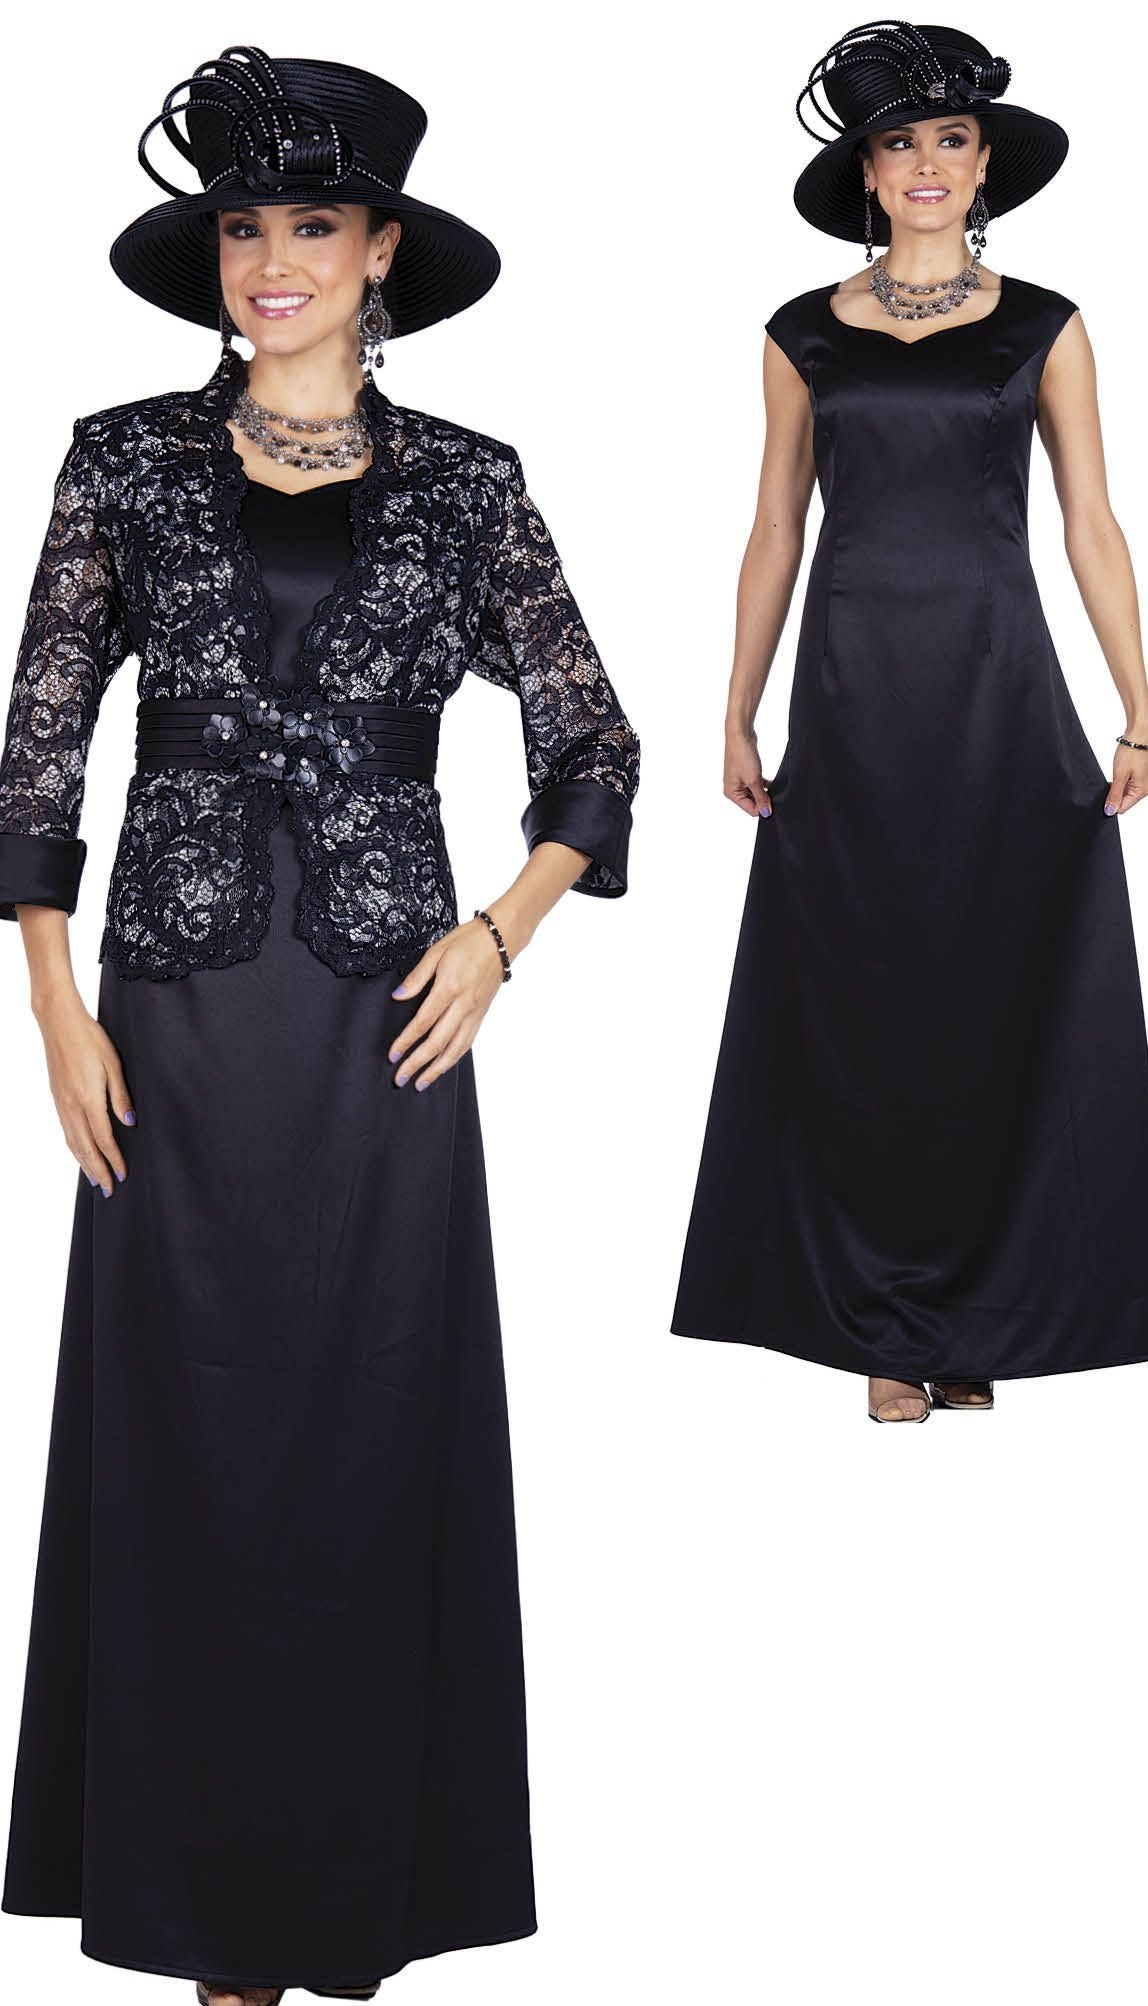 Aussie Austine Dress 5359-Black - Church Suits For Less